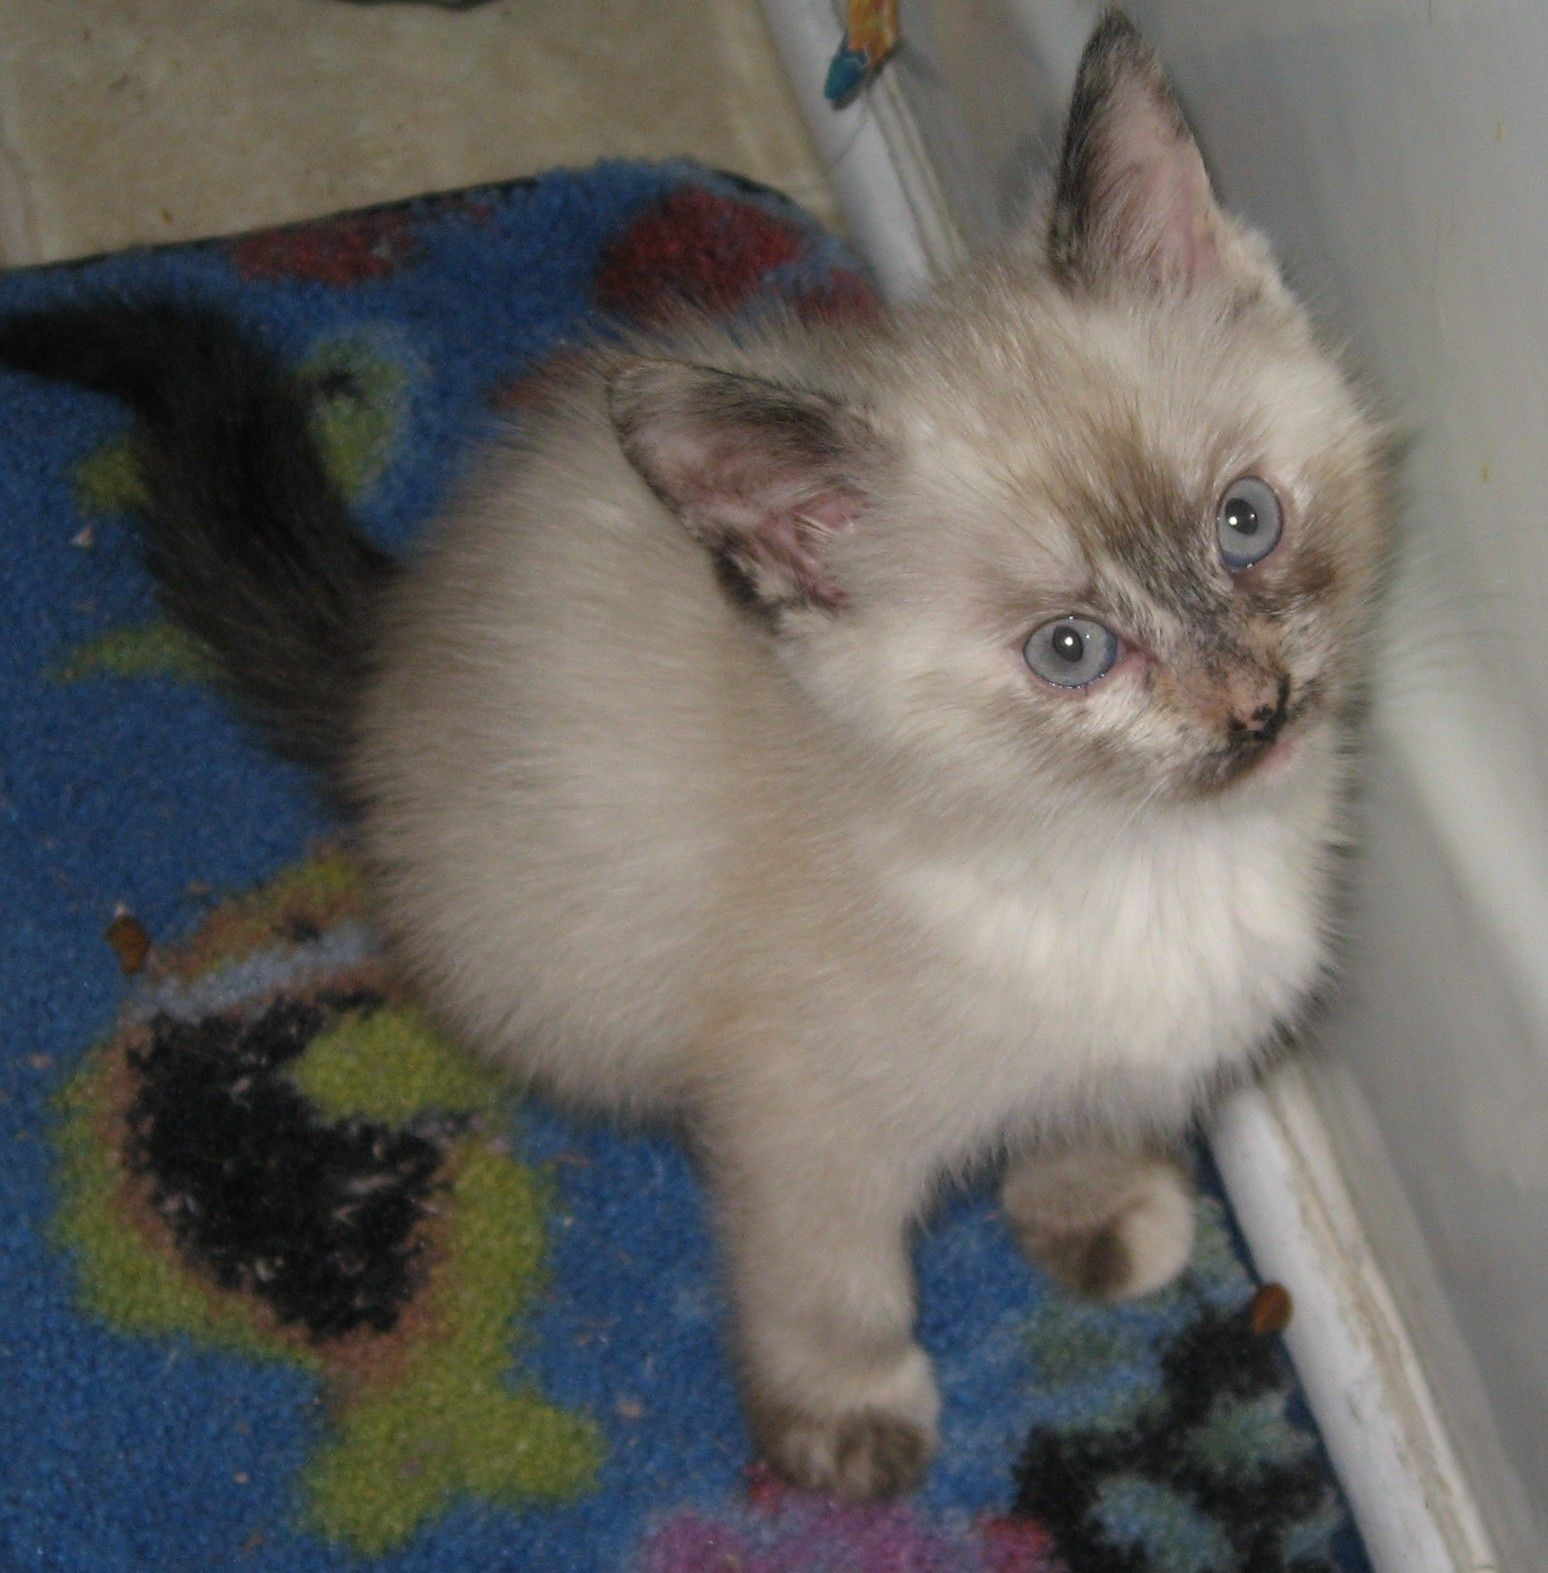 Adopted This Is Cloud Cloud Is A Female 8 Week Old Siamese Mix Long Haired Kitten She Is Currently Up For Adoption From Cats Cat Care Cats Cute Animals